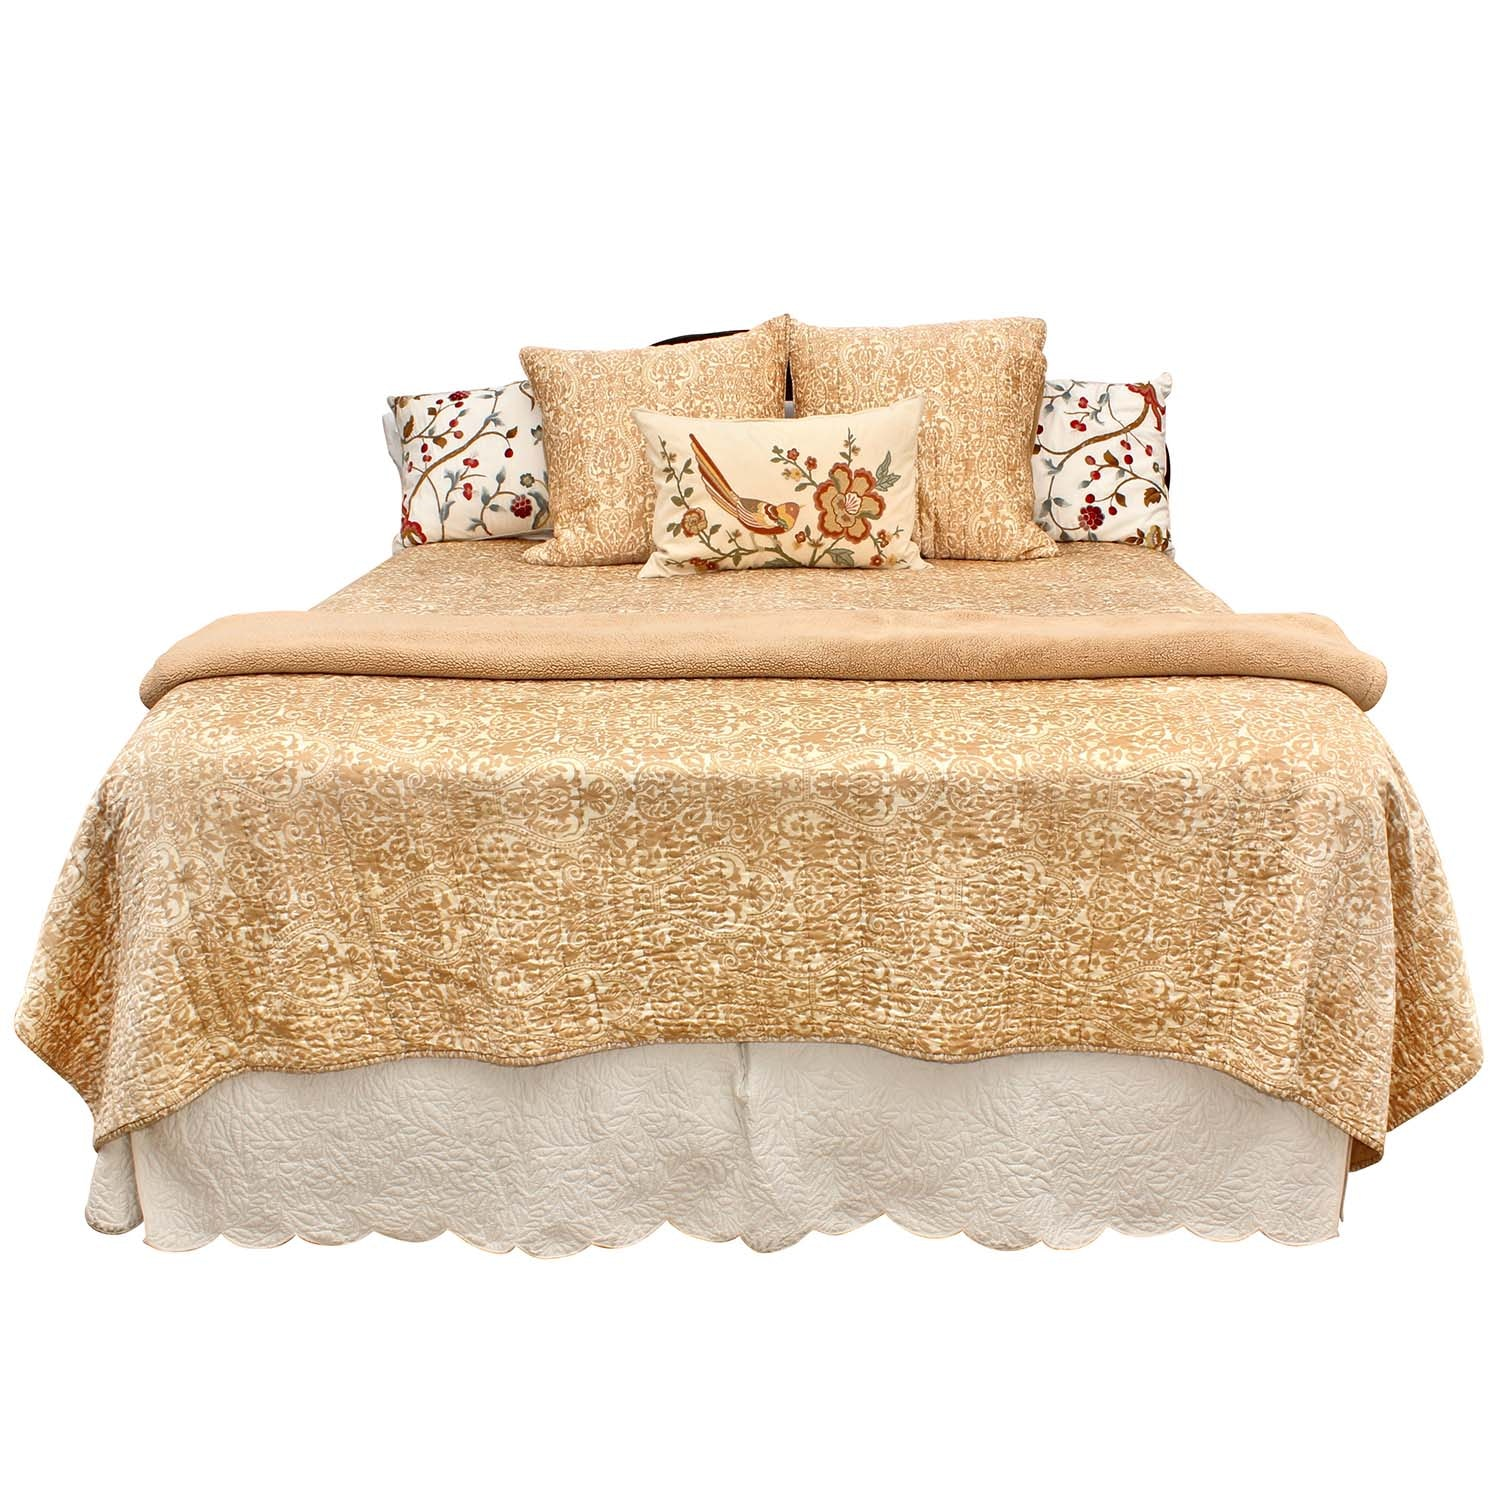 Pottery Barn Paisley And Floral King Size Bedding Set Ebth